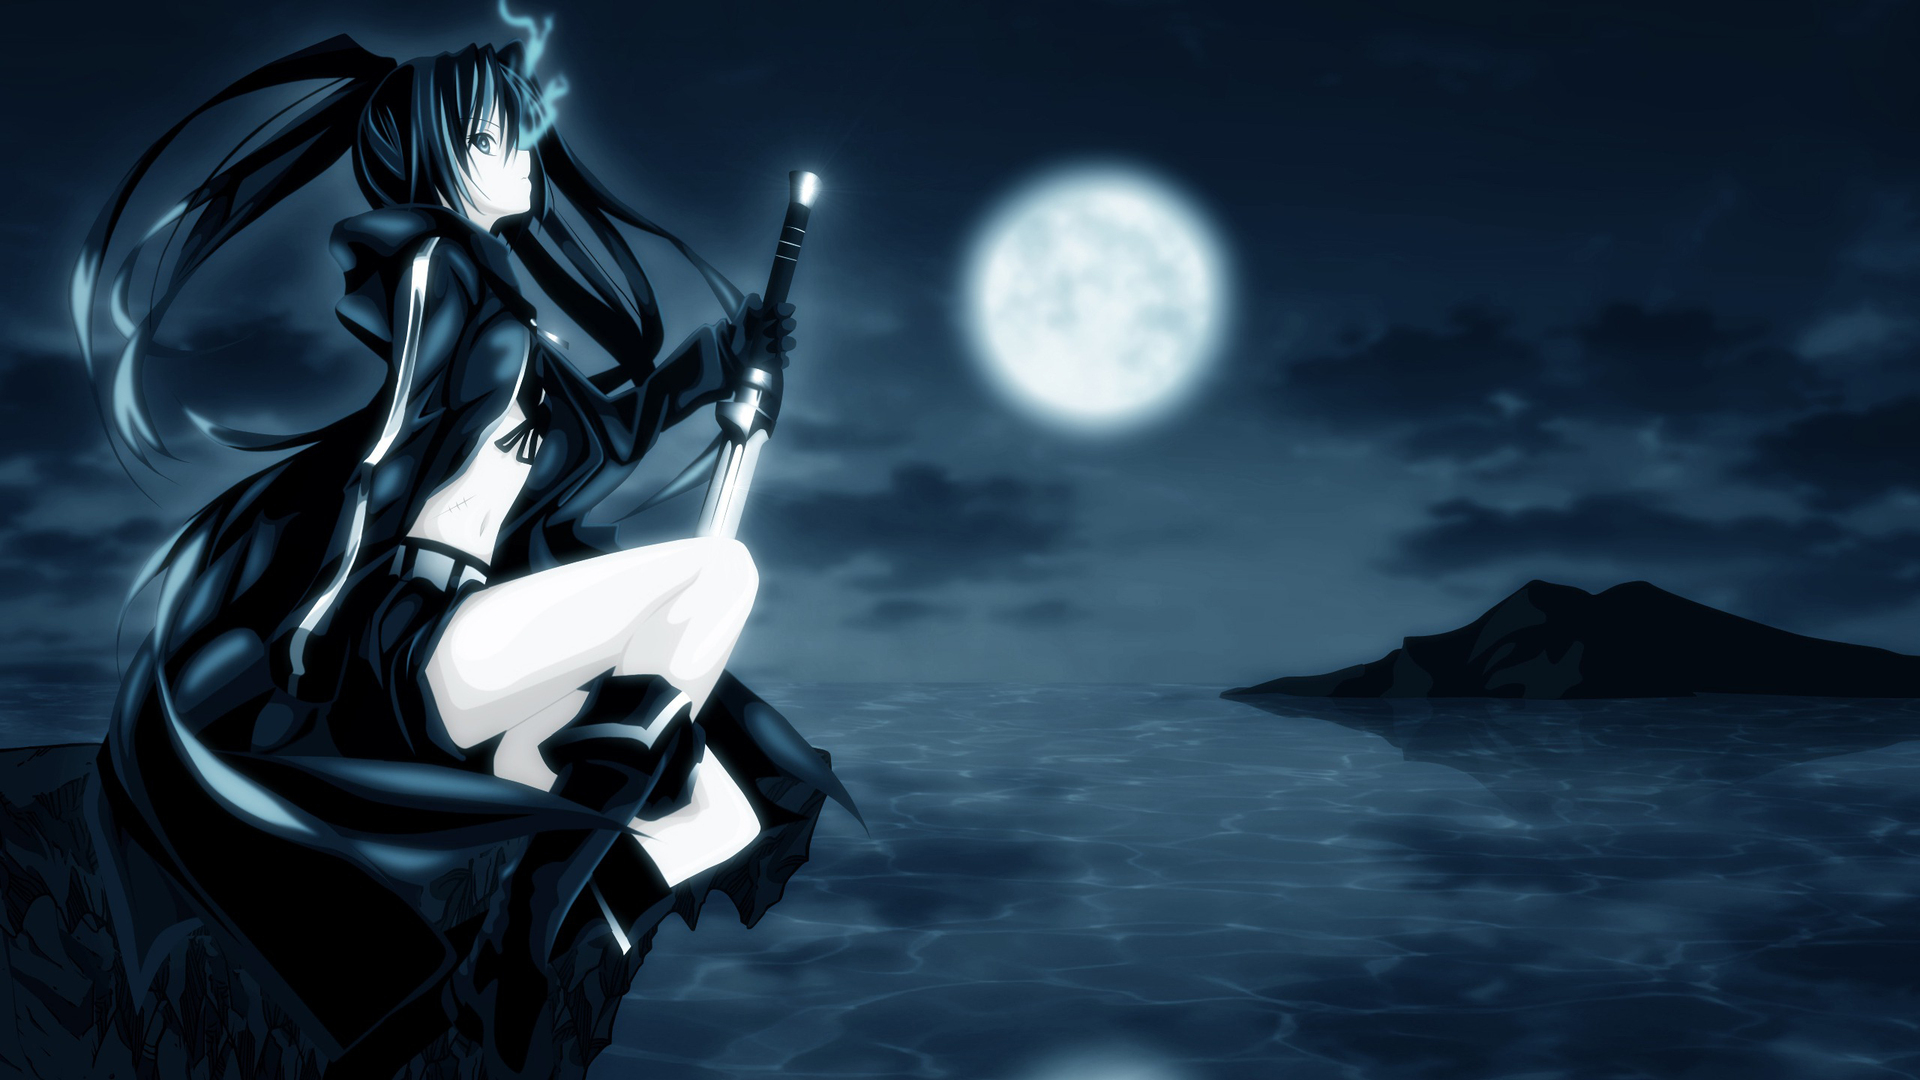 Dark Anime Wallpapers Picture Anime Wallpaper Arunnath Best Images